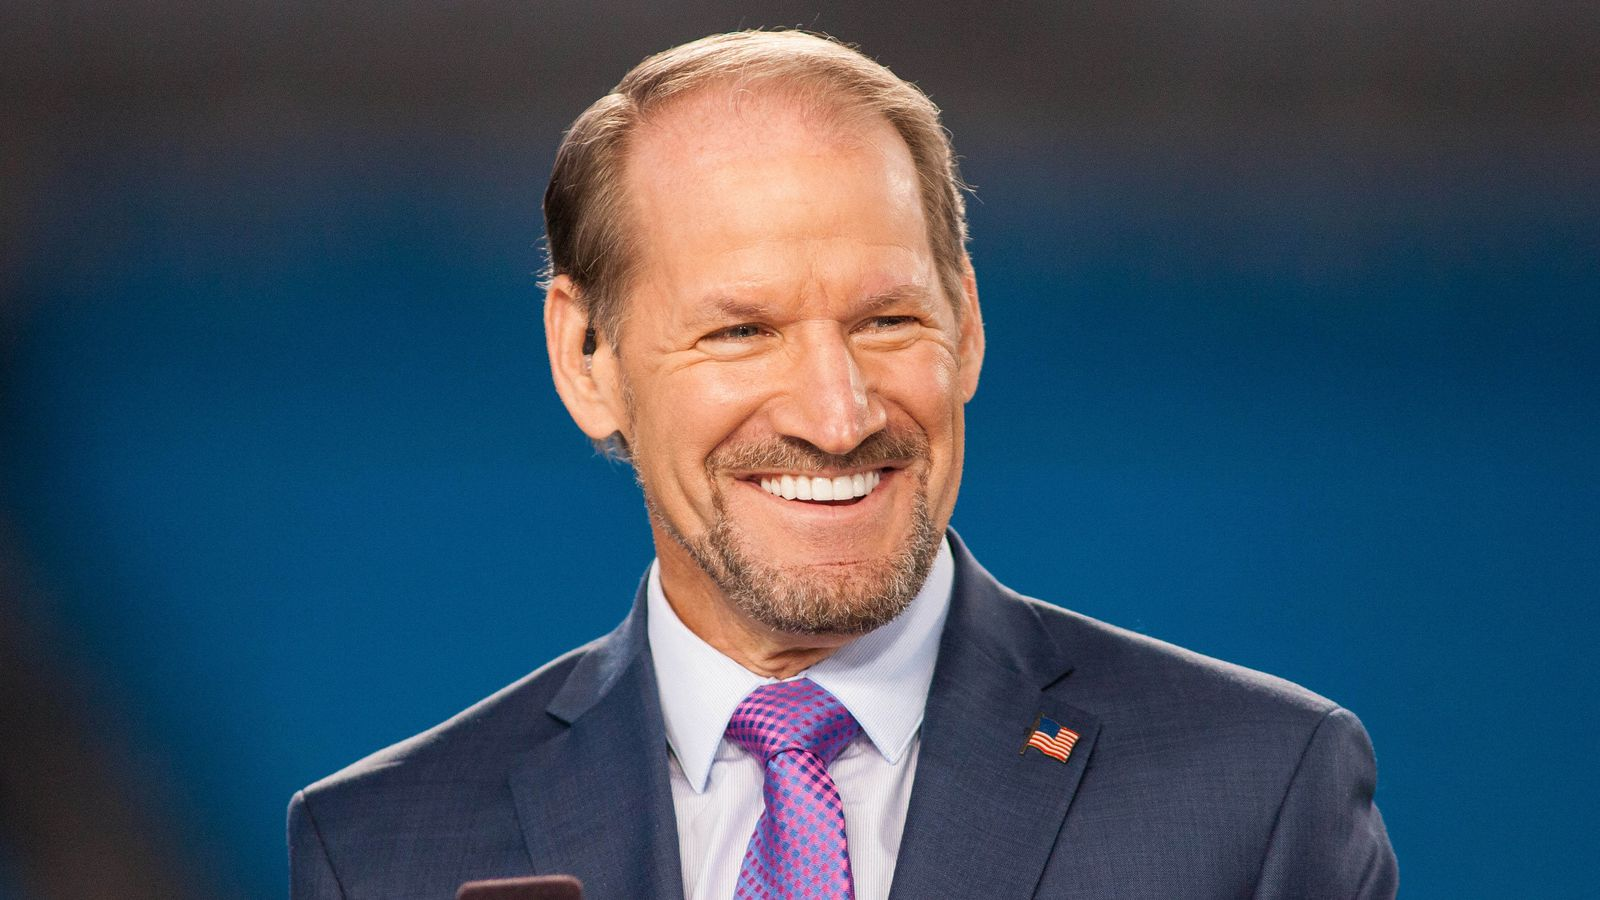 Ex-Steelers head coach Bill Cowher doesn't see the Steelers 'window of success' closing any time ...